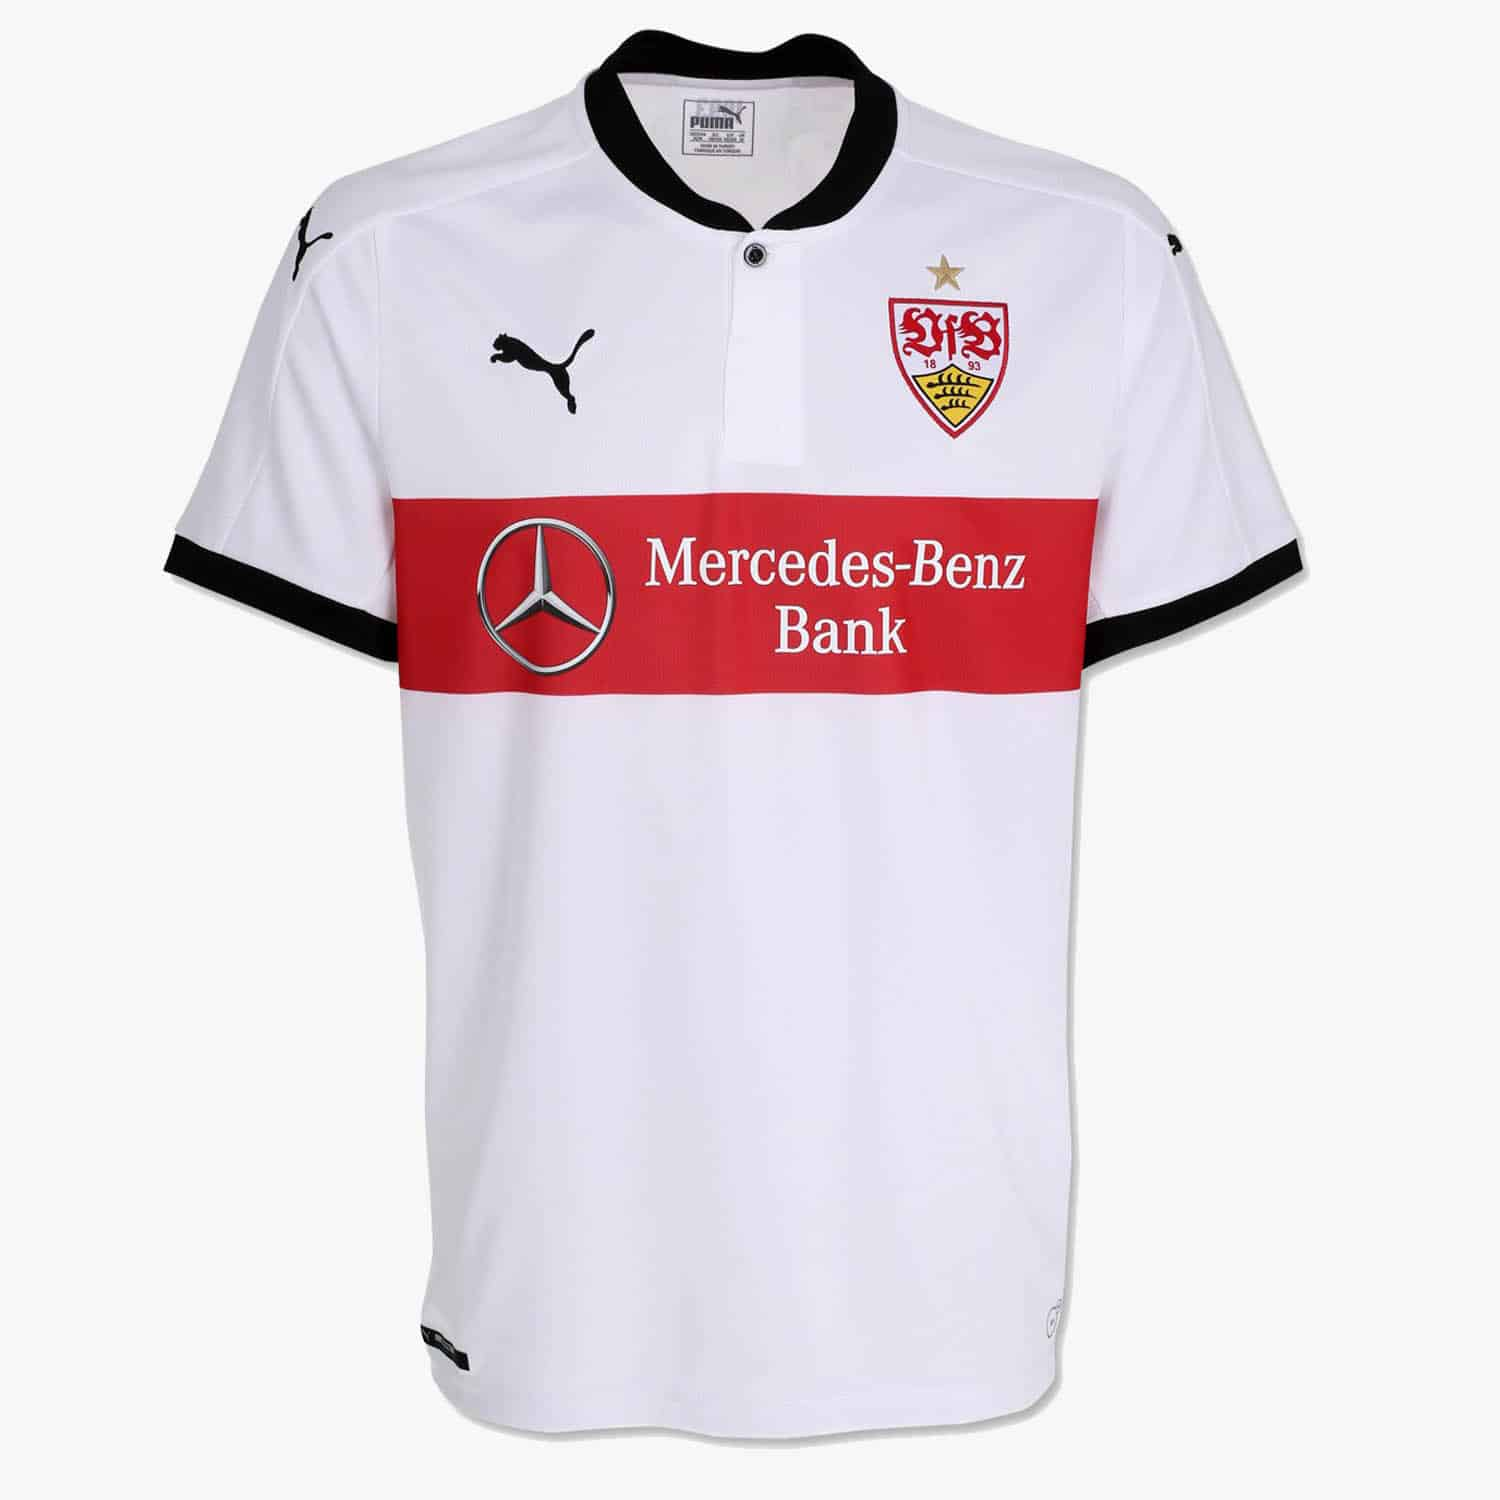 puma d voile le nouveau maillot domicile du vfb stuttgart. Black Bedroom Furniture Sets. Home Design Ideas